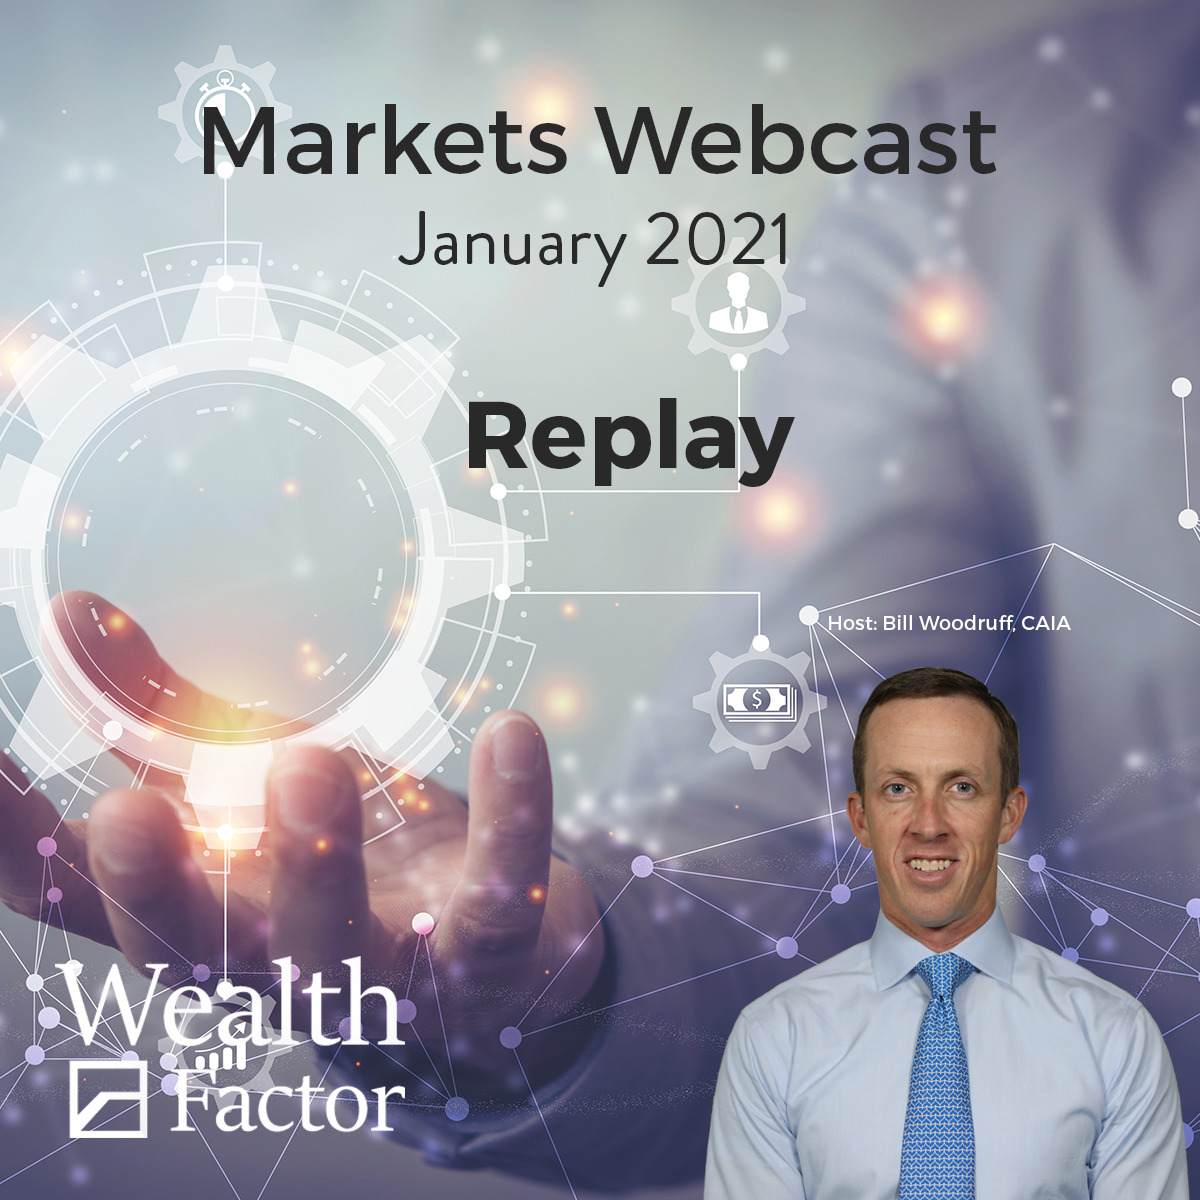 WealthFactor Review & Update: January 2021